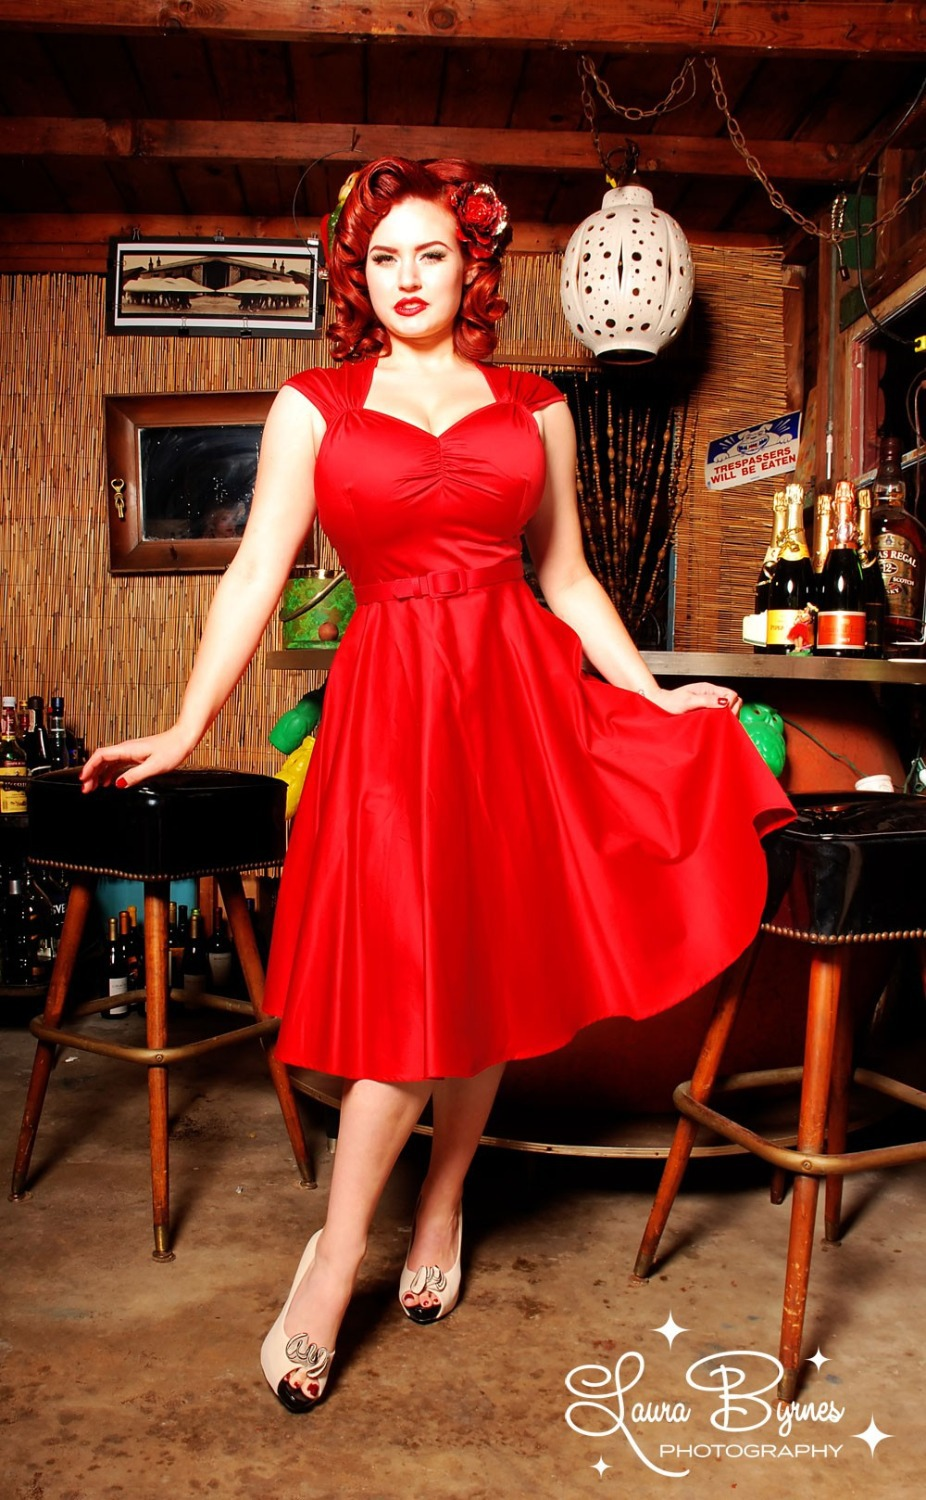 Heidi Dresses 1950s Pinup Girl Red Party Dress Rockabilly